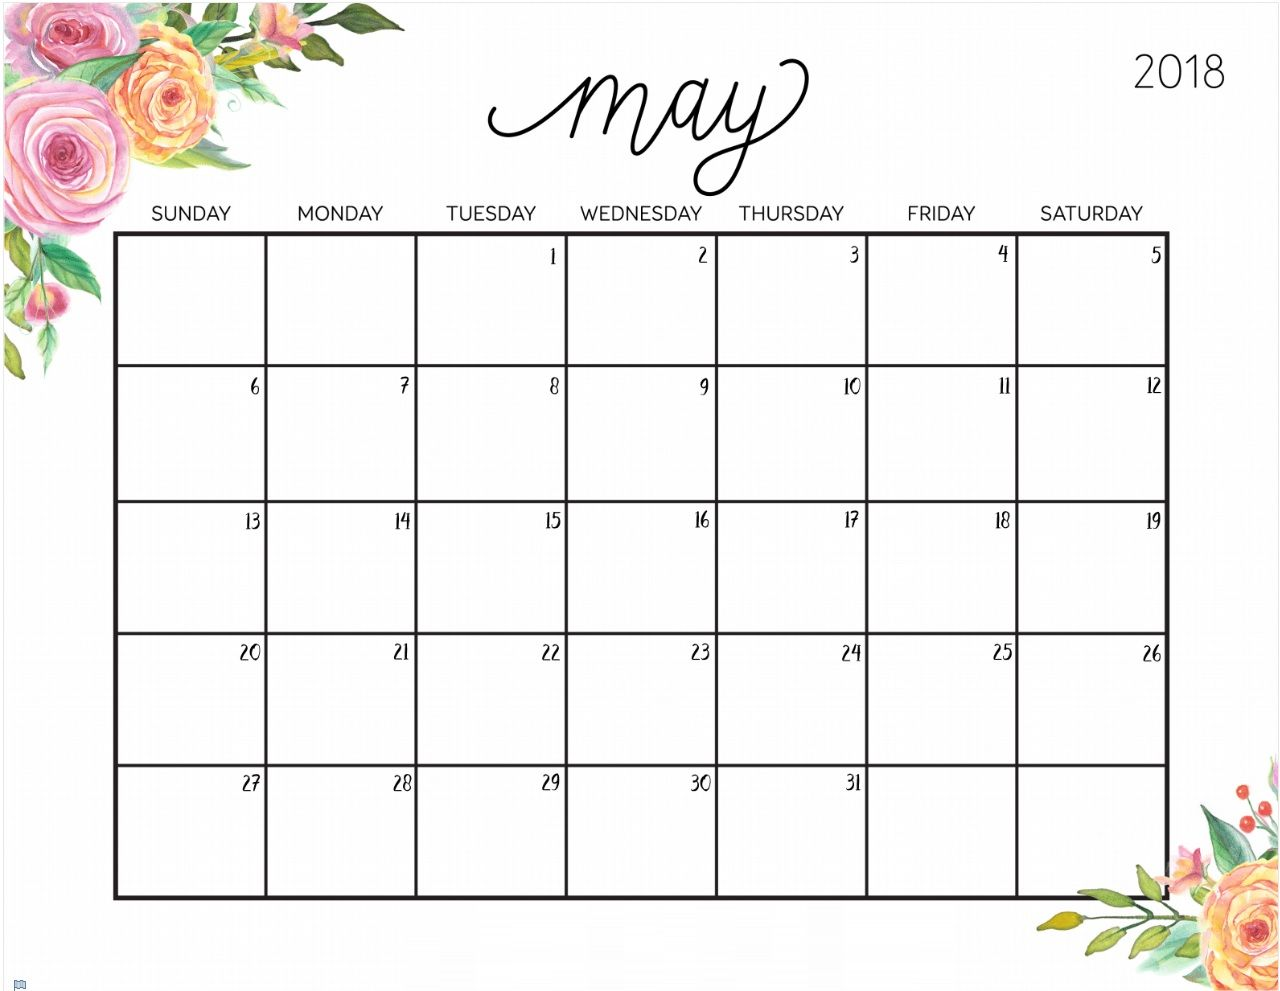 May Printable Calendar.Free Printable May 2018 Desk Calendar Calendar 2018 August